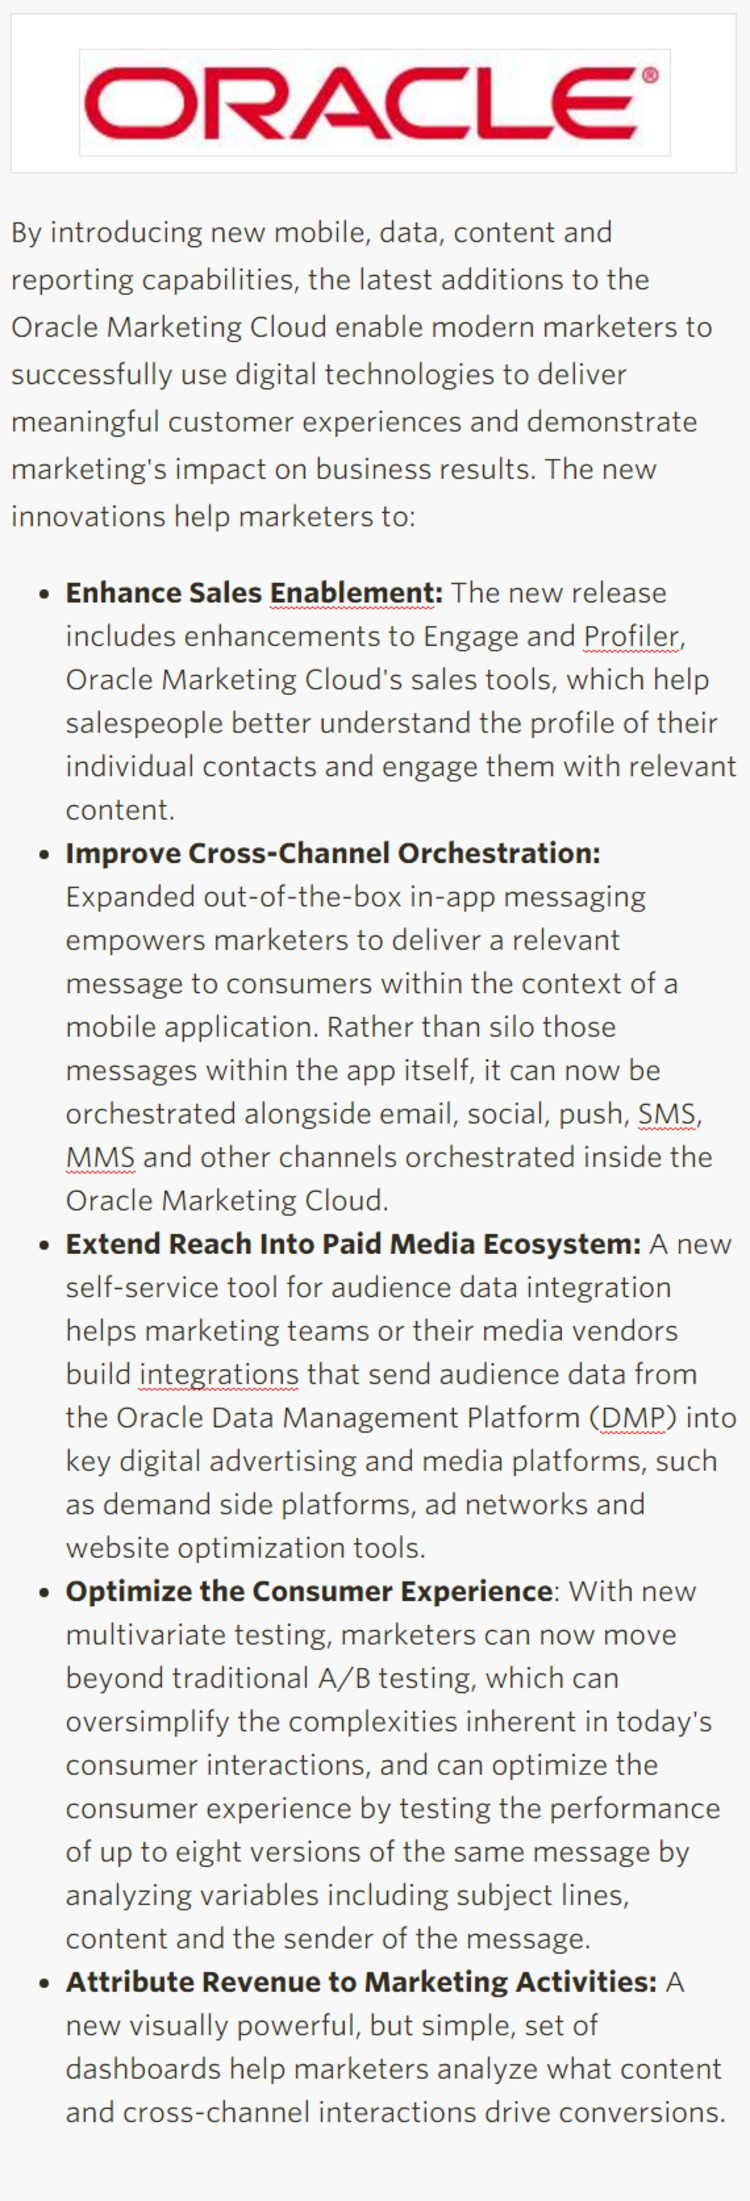 New Oracle Marketing Cloud Enhancements - Oracle   The Marketing Technology Alert   Scoop.it